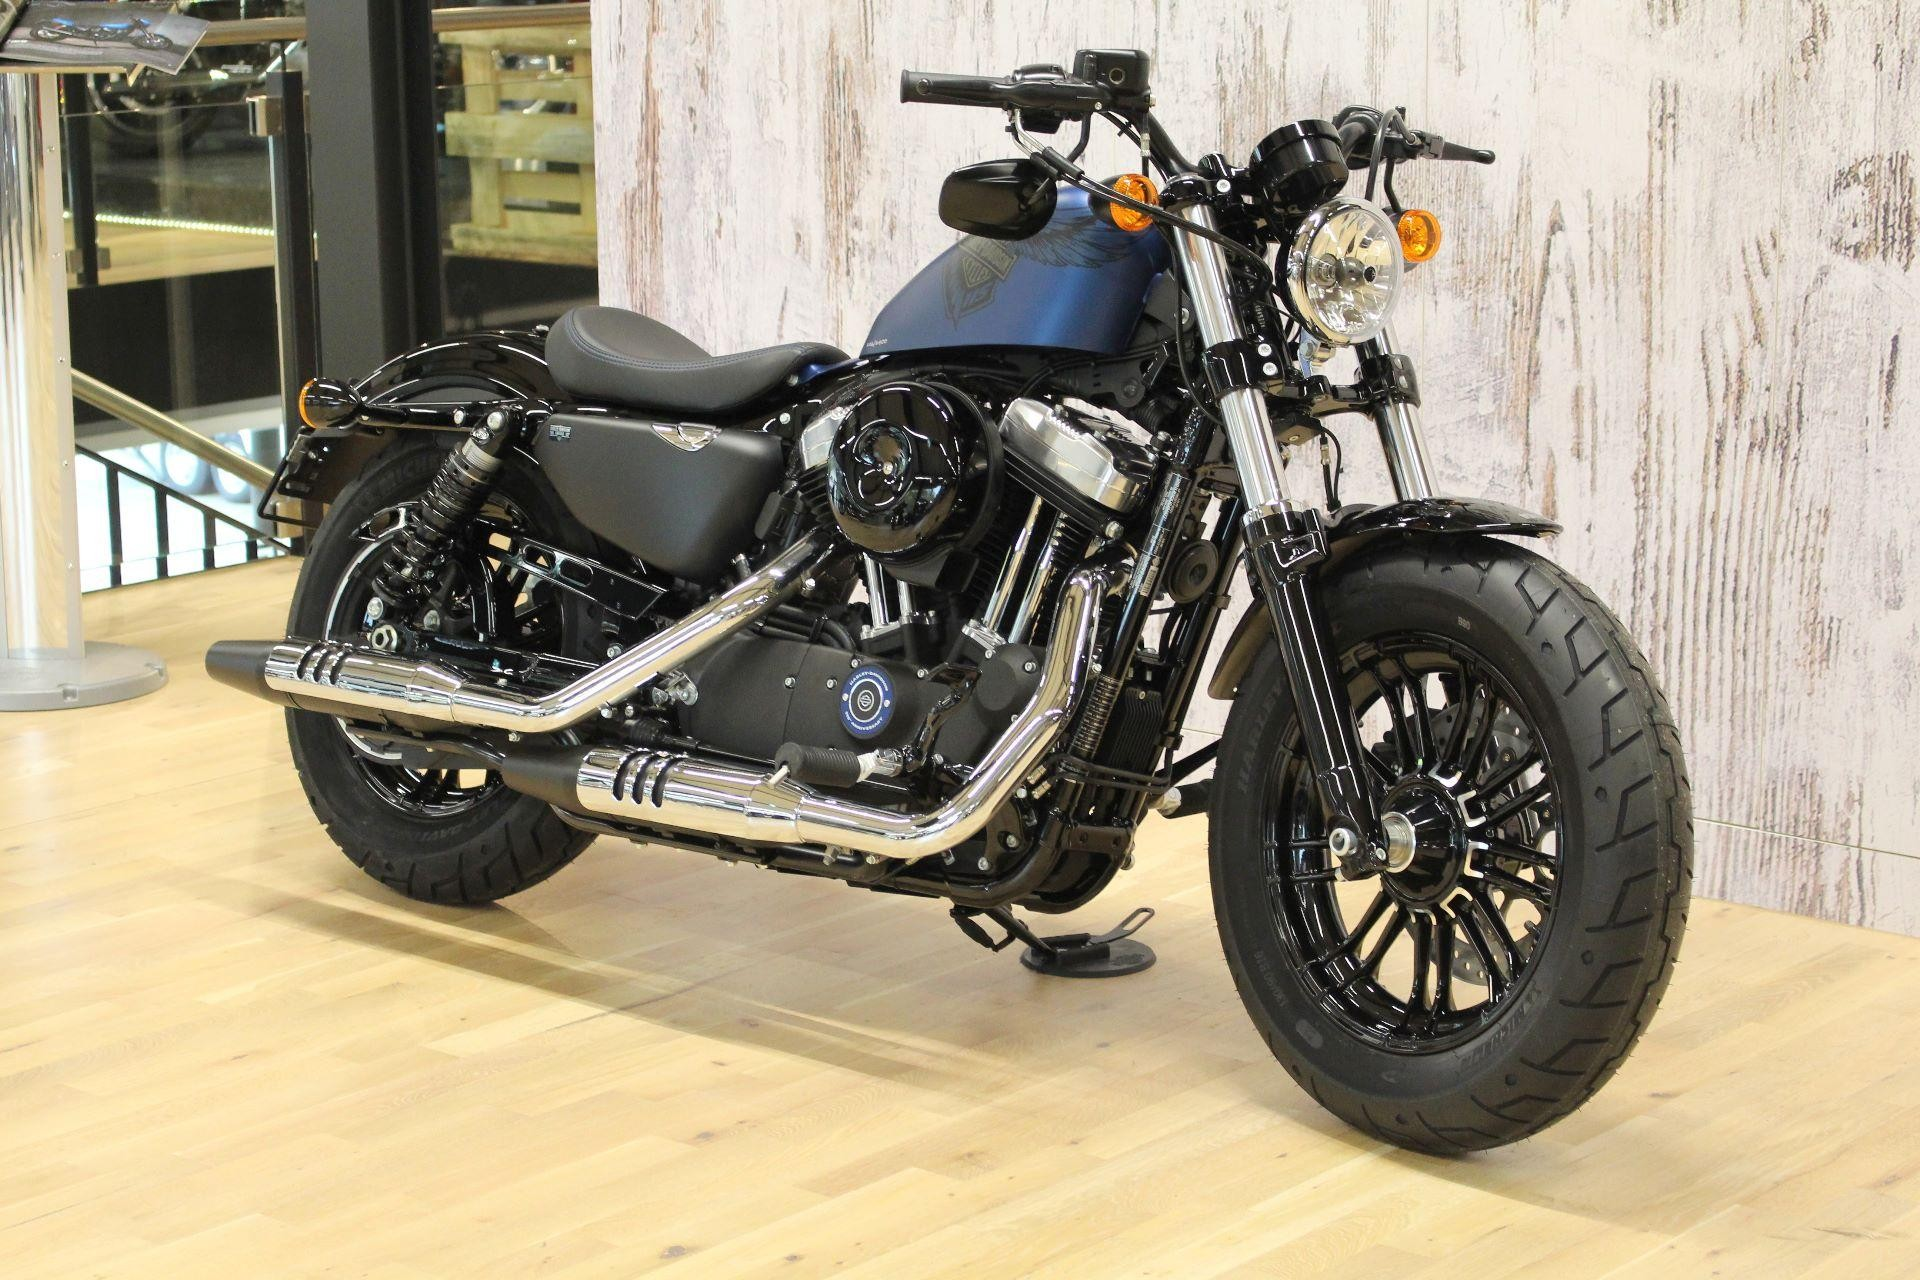 harley davidson xl 1200 x sportster forty eight anniversary sonder model 2018 115 years. Black Bedroom Furniture Sets. Home Design Ideas